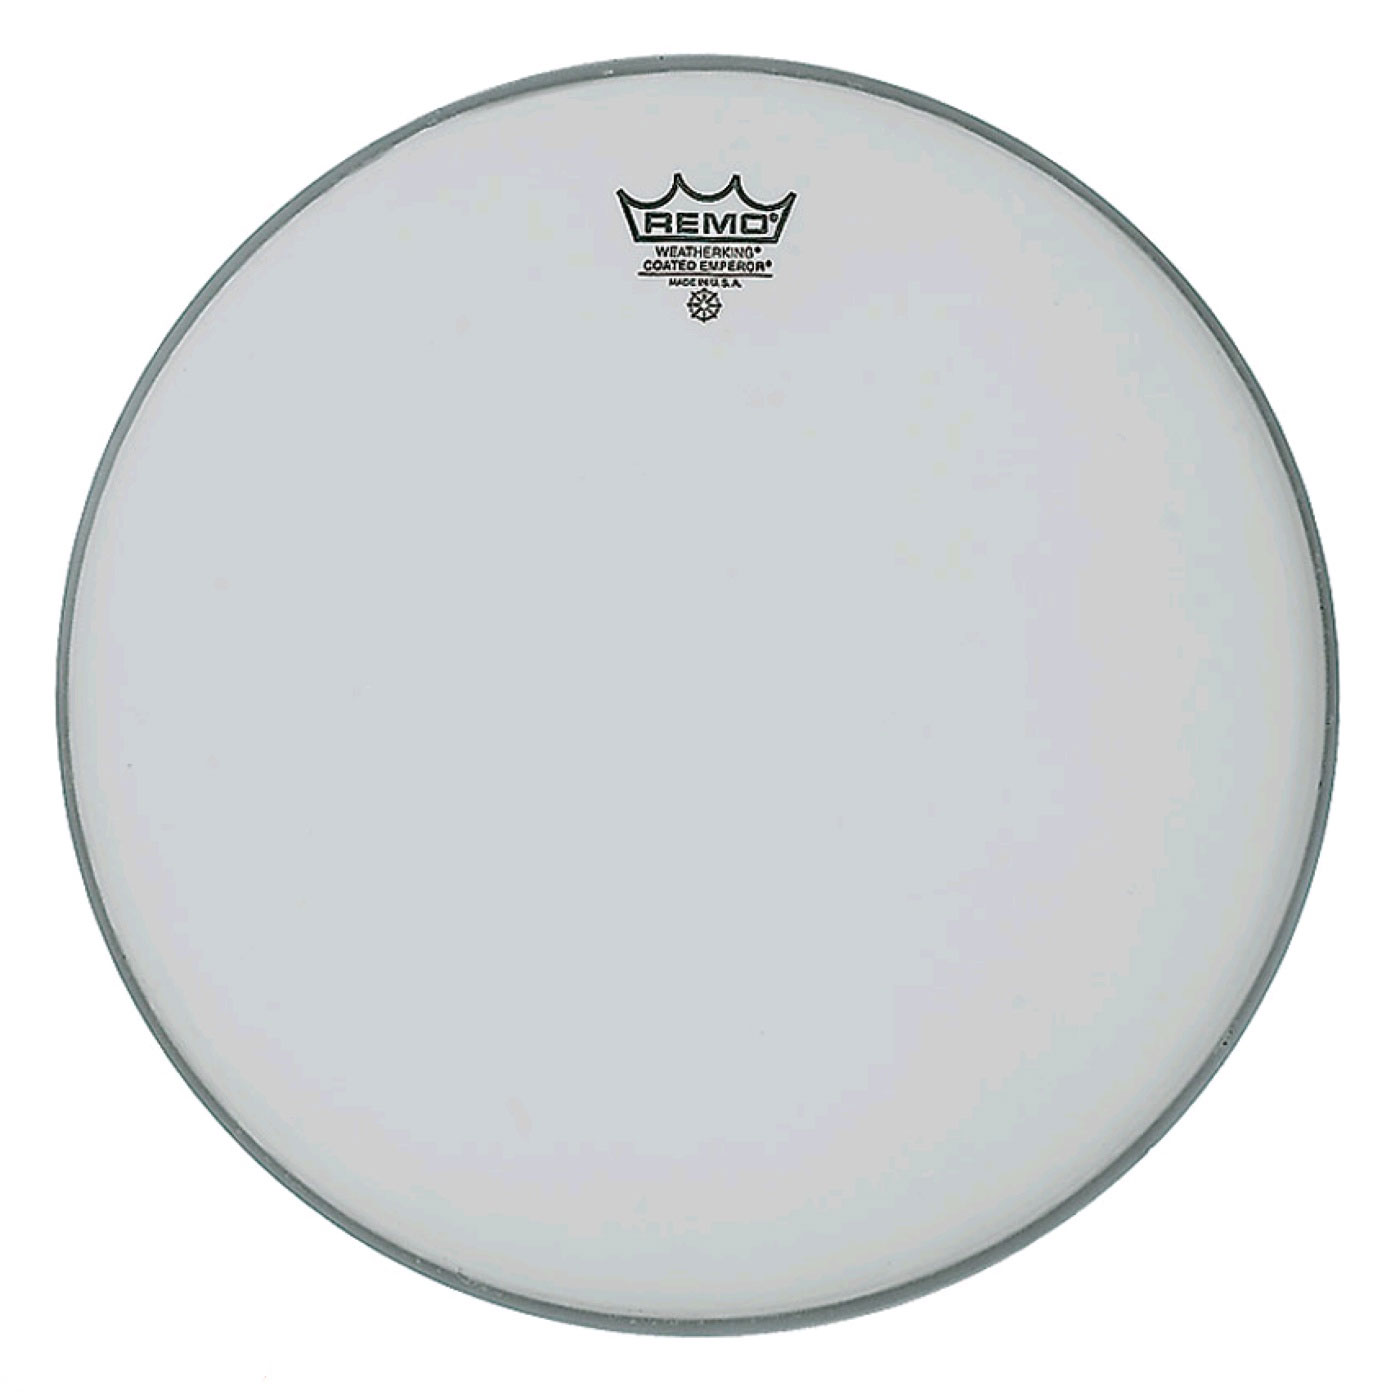 "Remo 6"" Emperor Coated Drum Head"